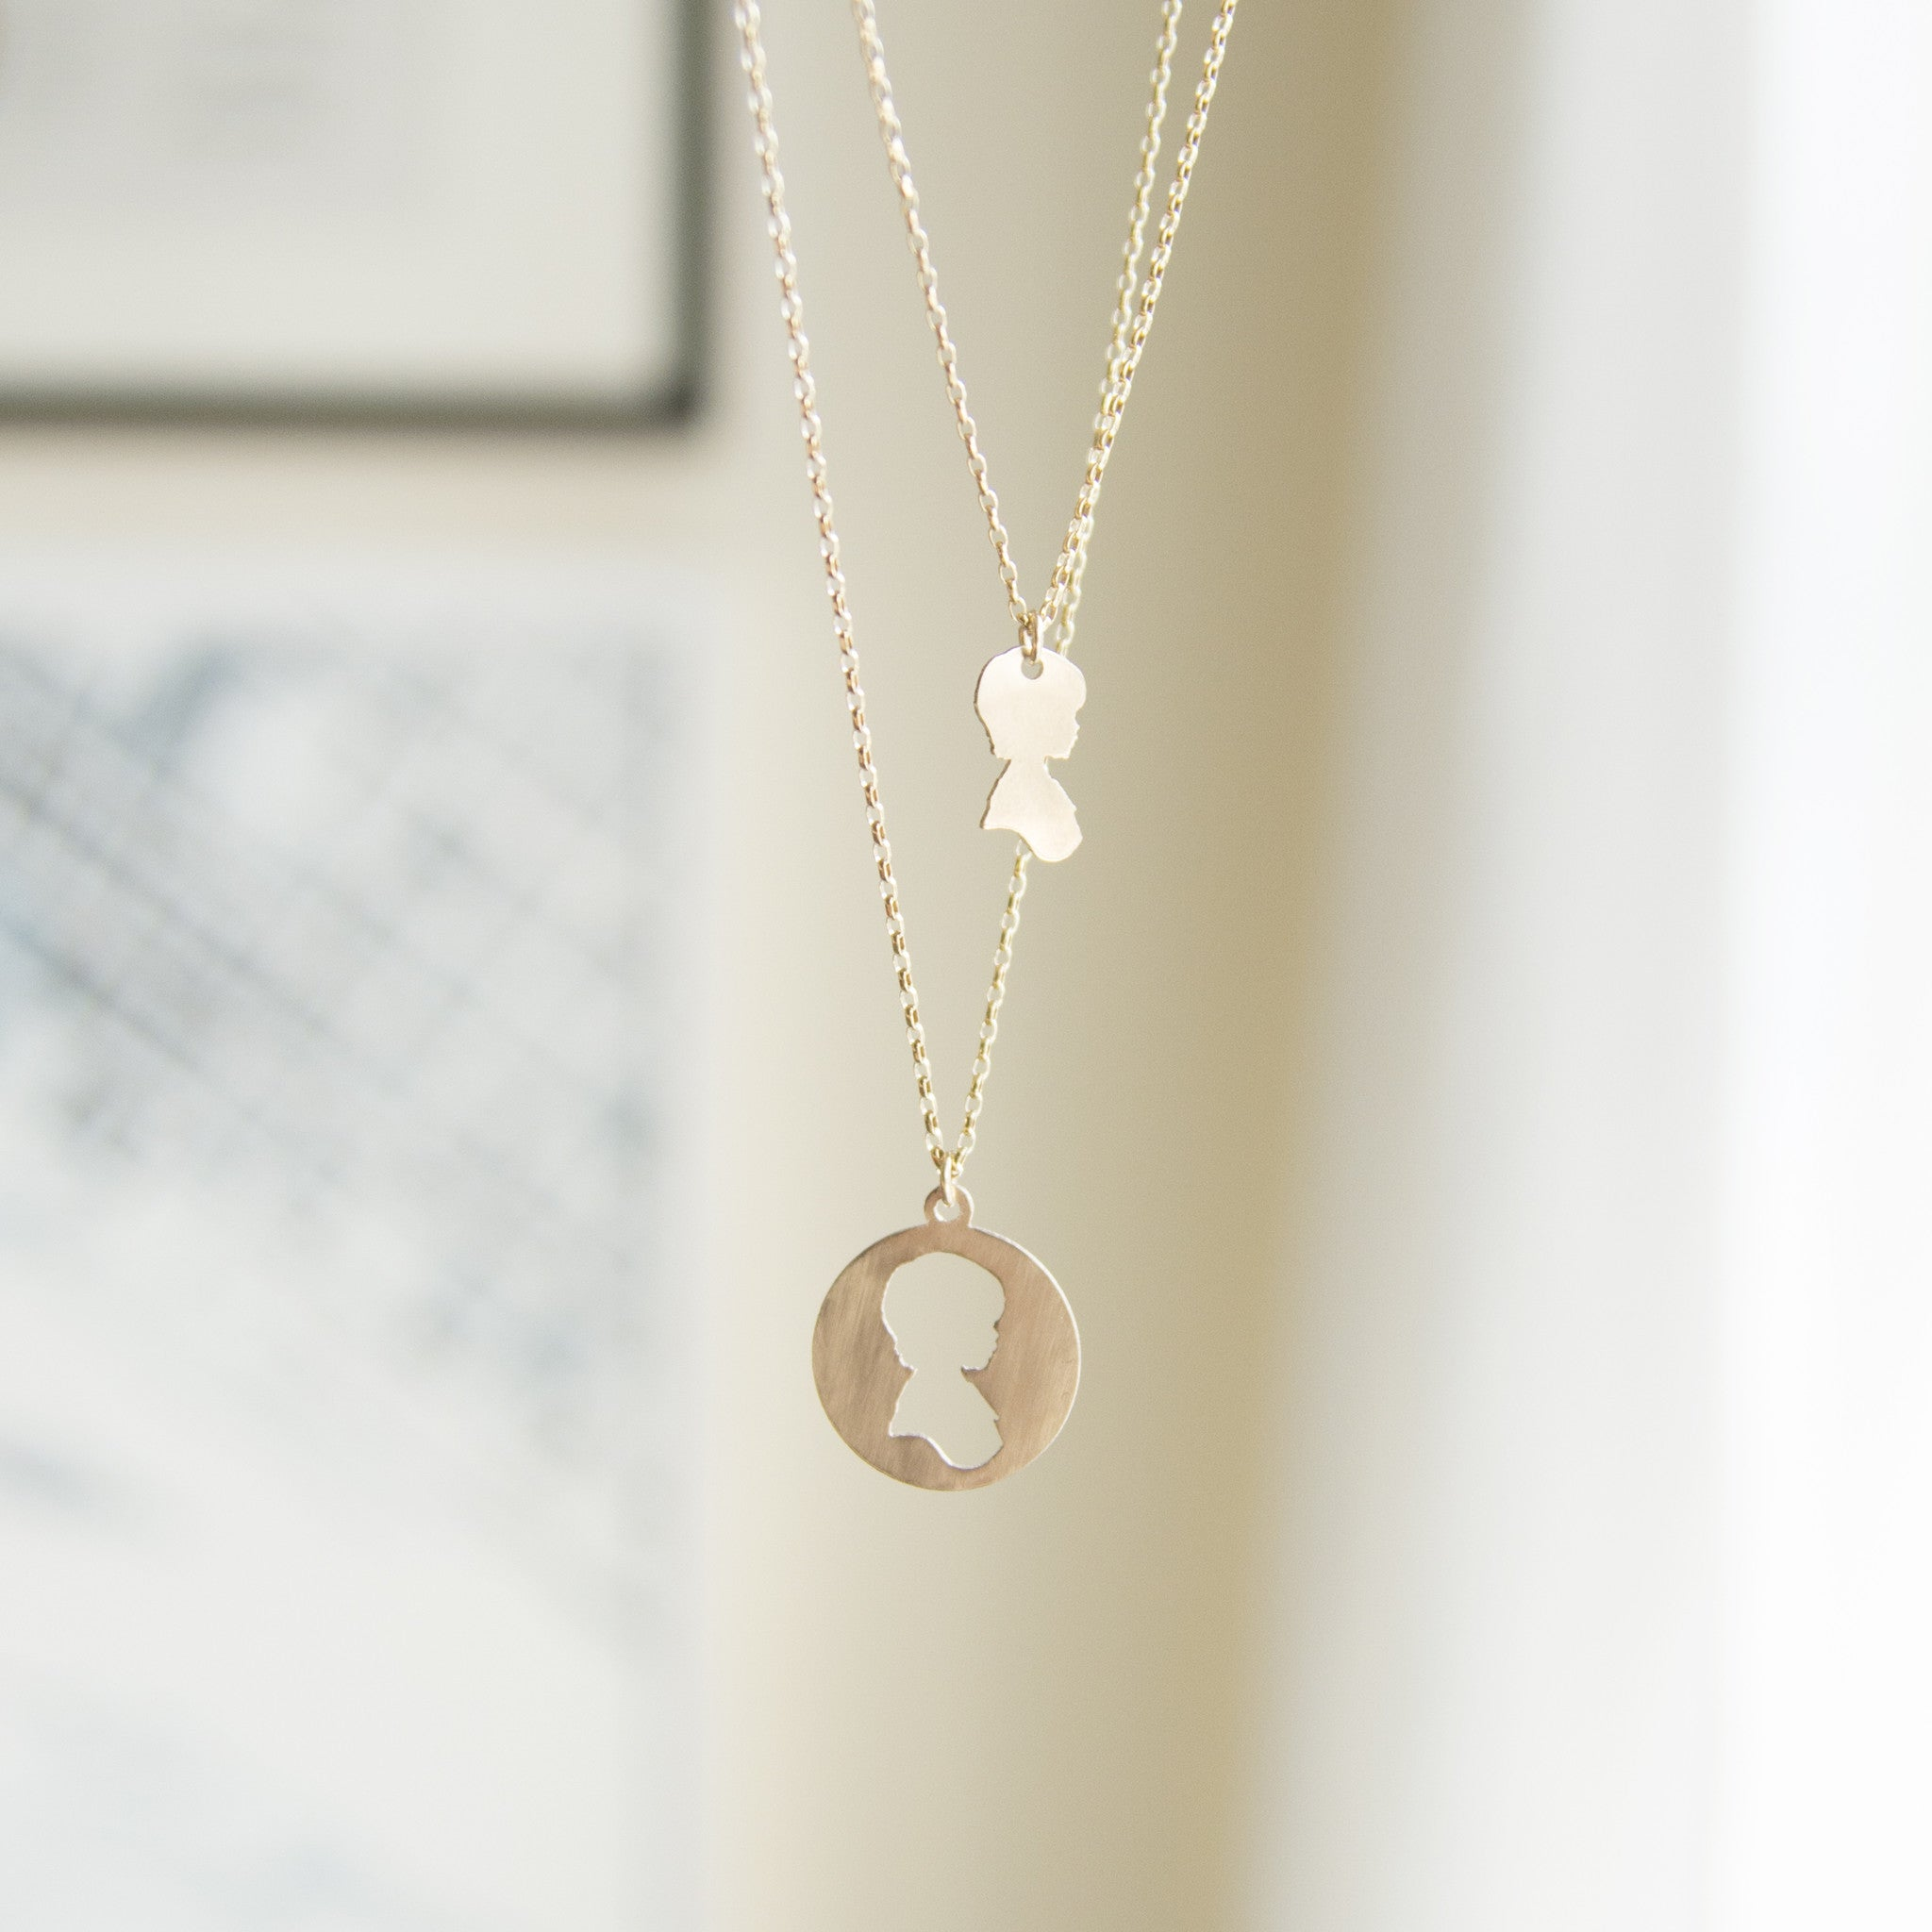 stella coordinate dot rory necklace home p